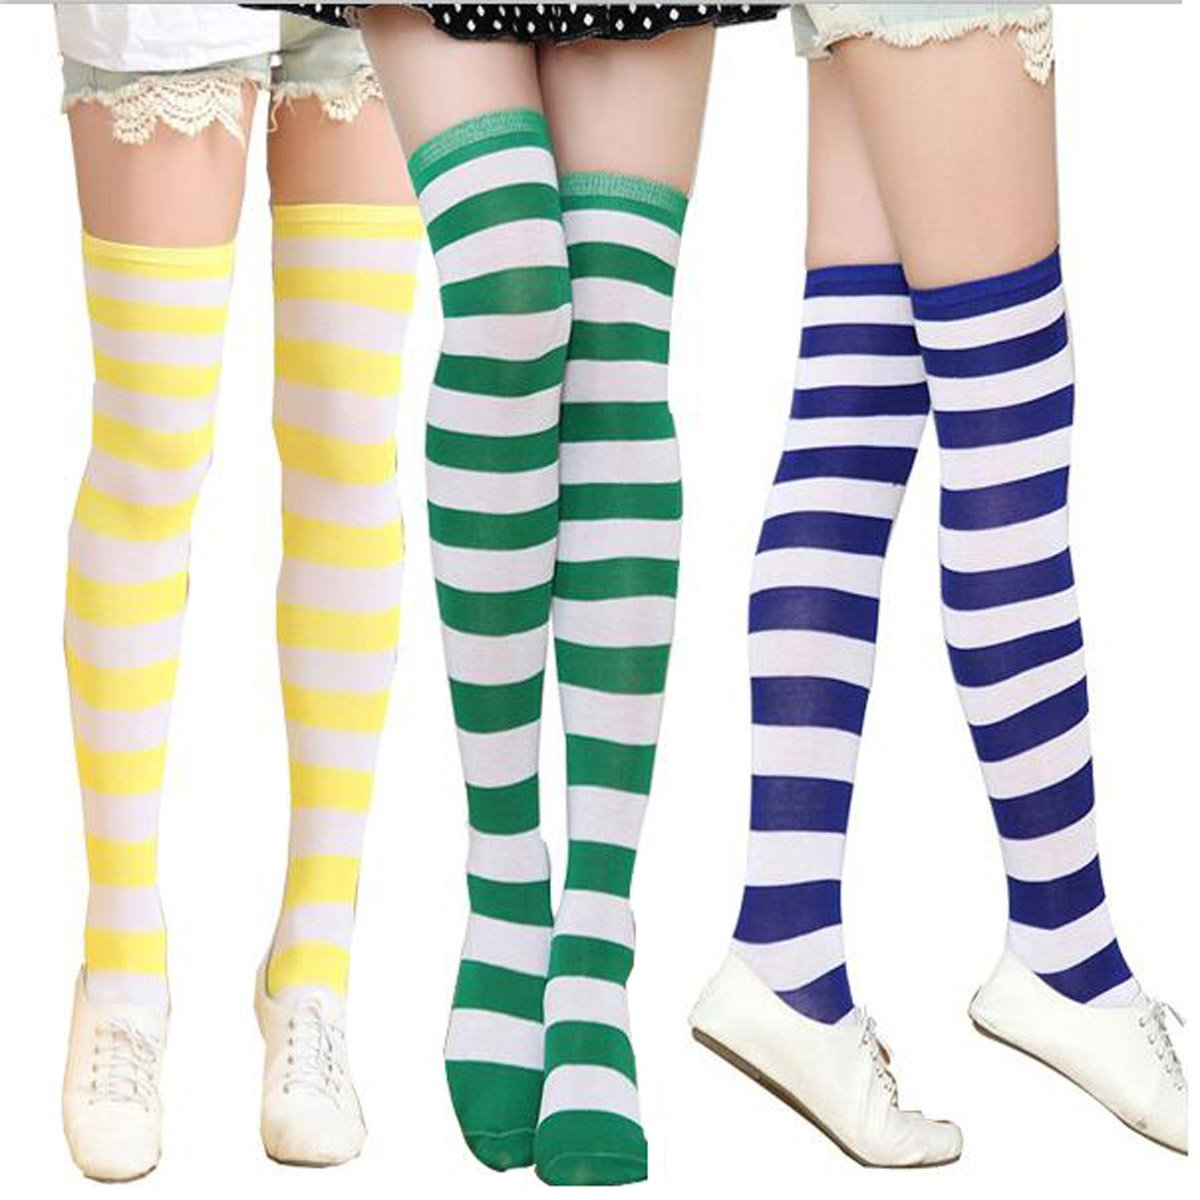 5d6d5a5f77607 3 Pairs Women Long Striped Thigh High Socks Over Knee Stockings at Amazon  Women's Clothing store: